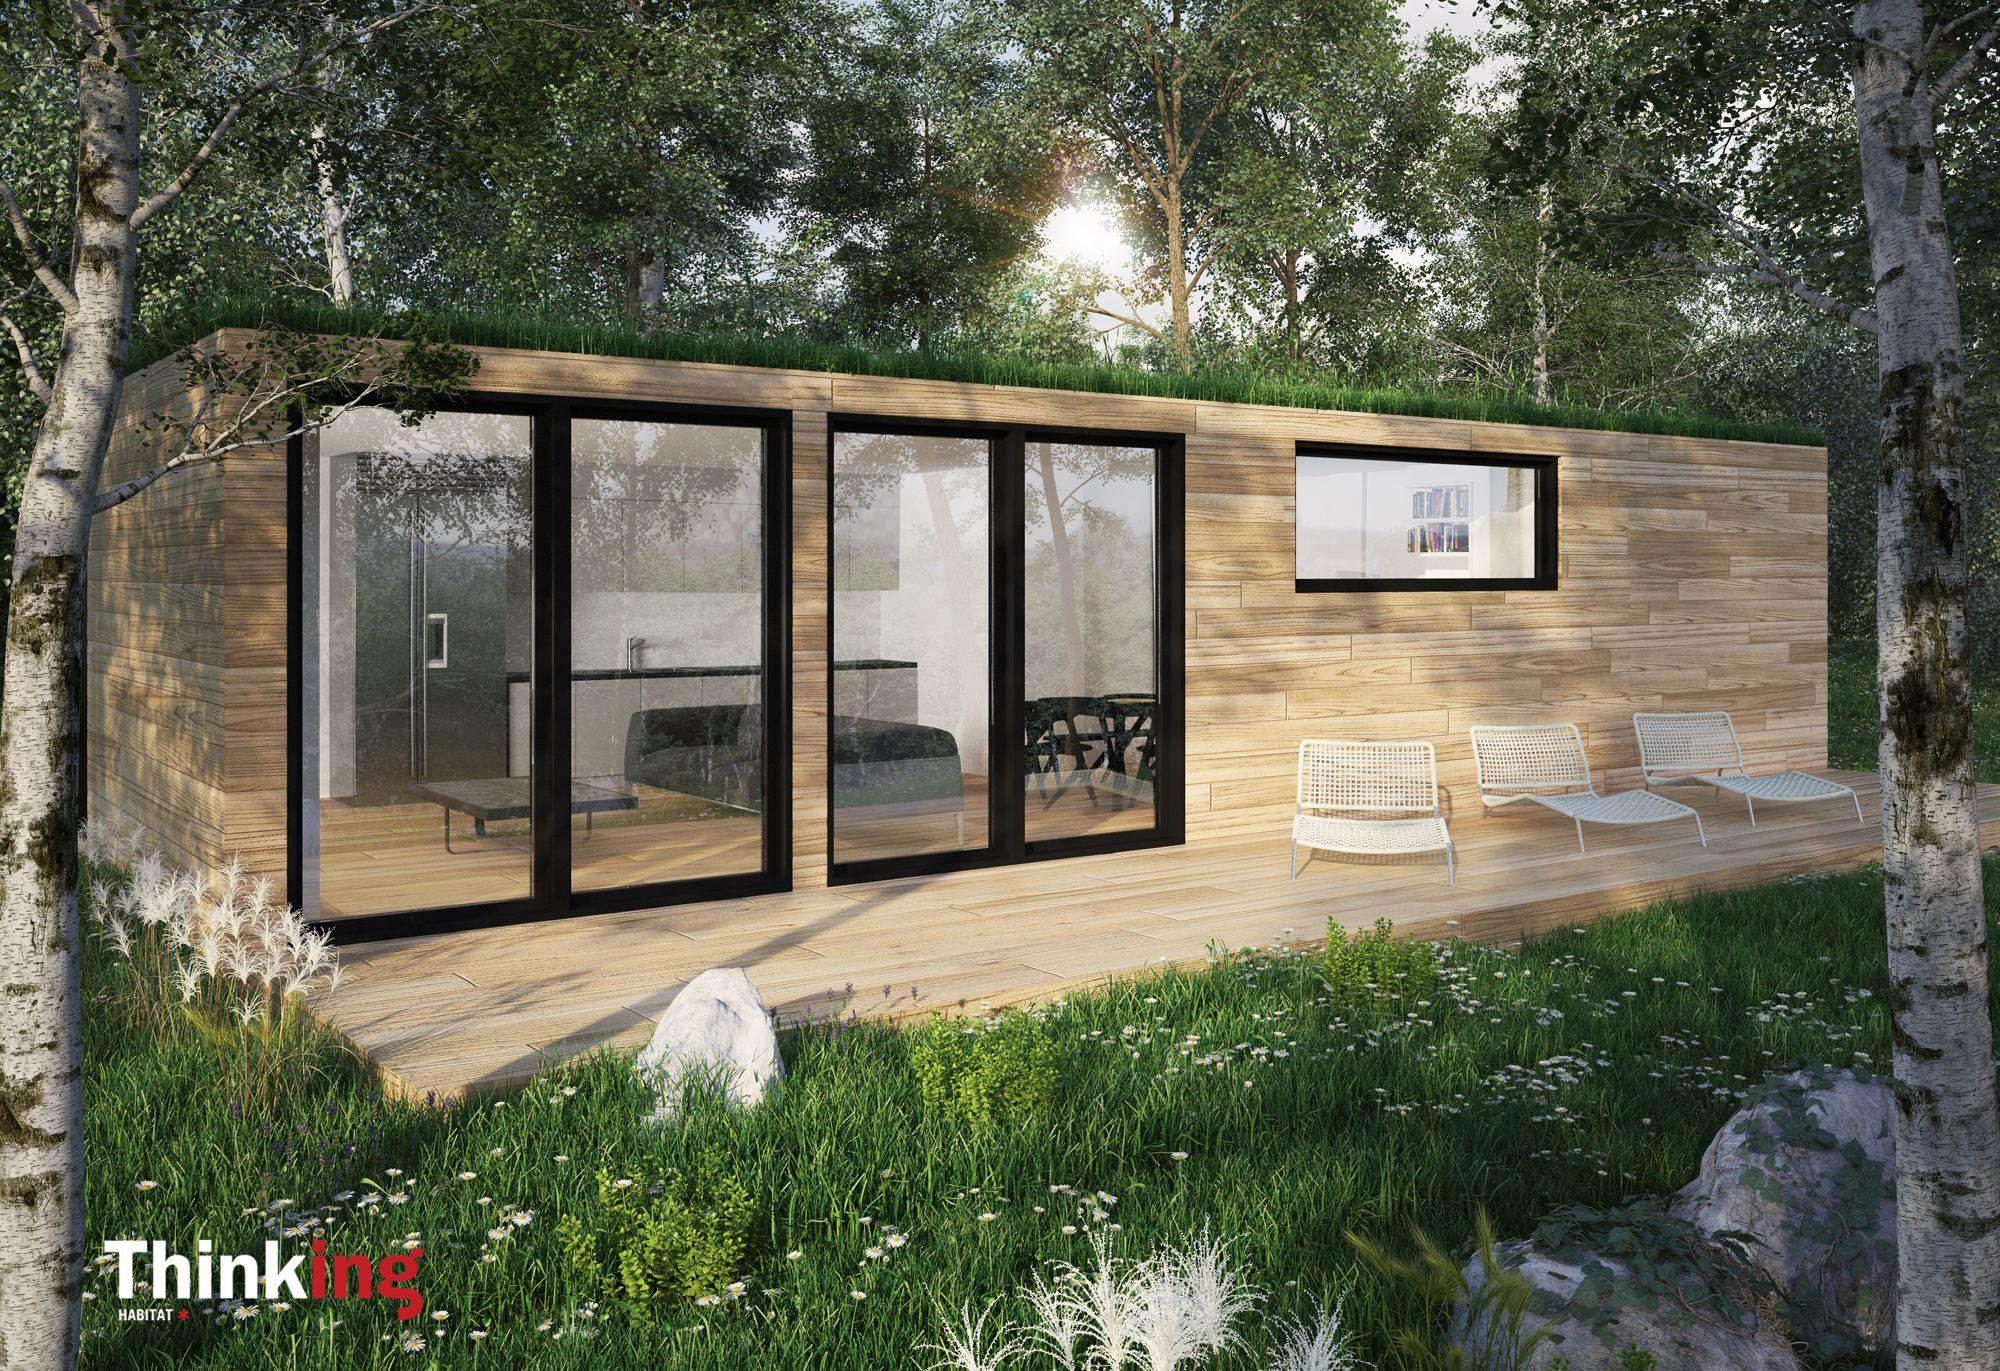 Mini chalet thinking habitat construit partir de for Conteneur habitat